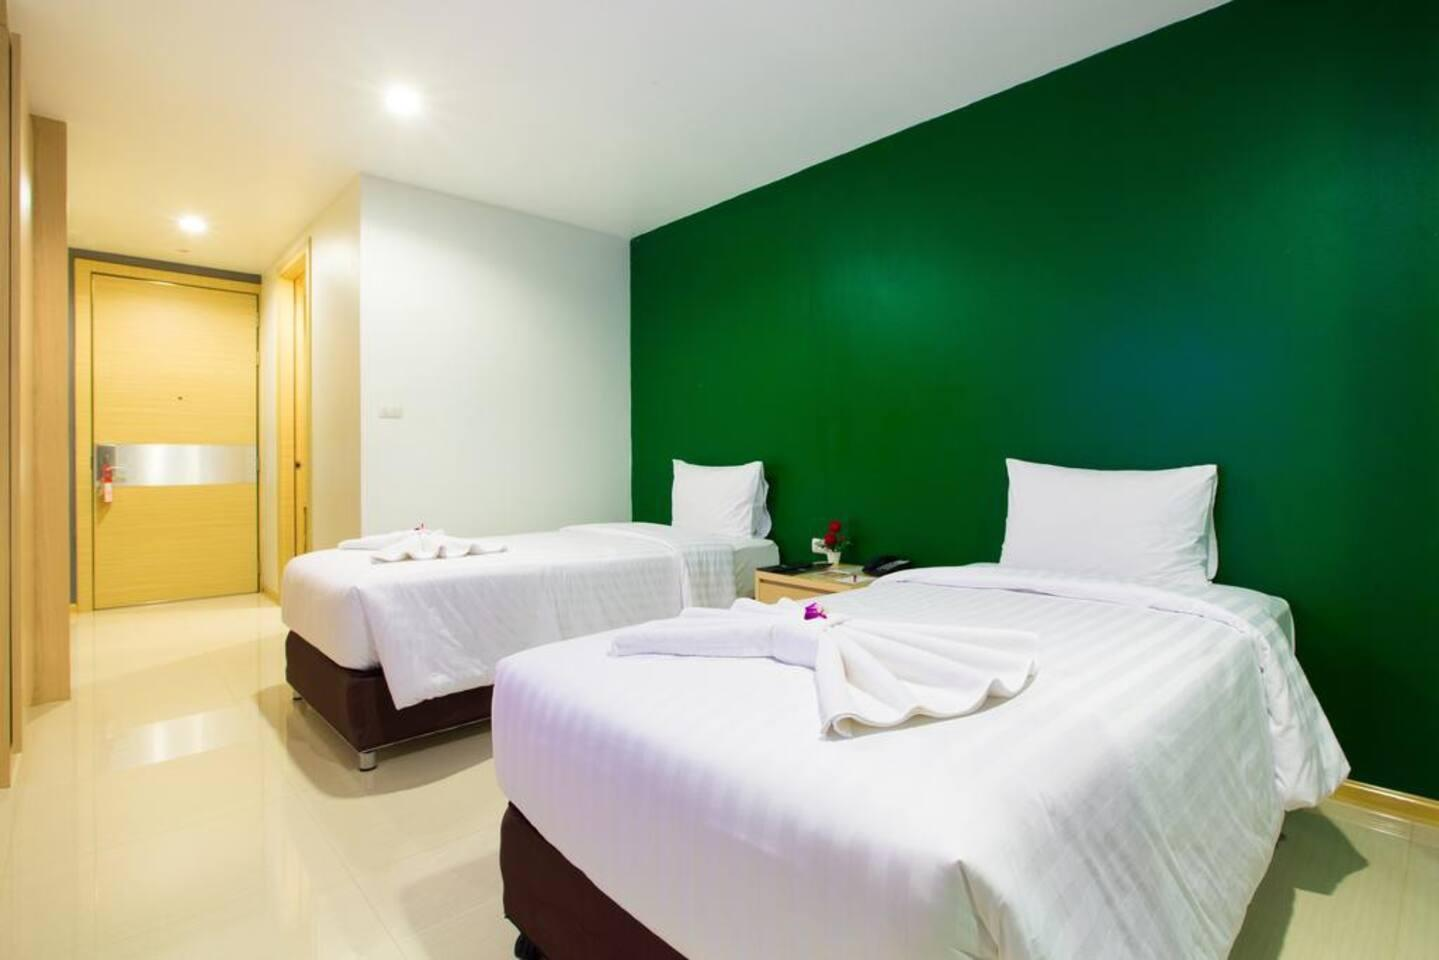 Twin Room With Kitchenette Near Koh Samui Airport